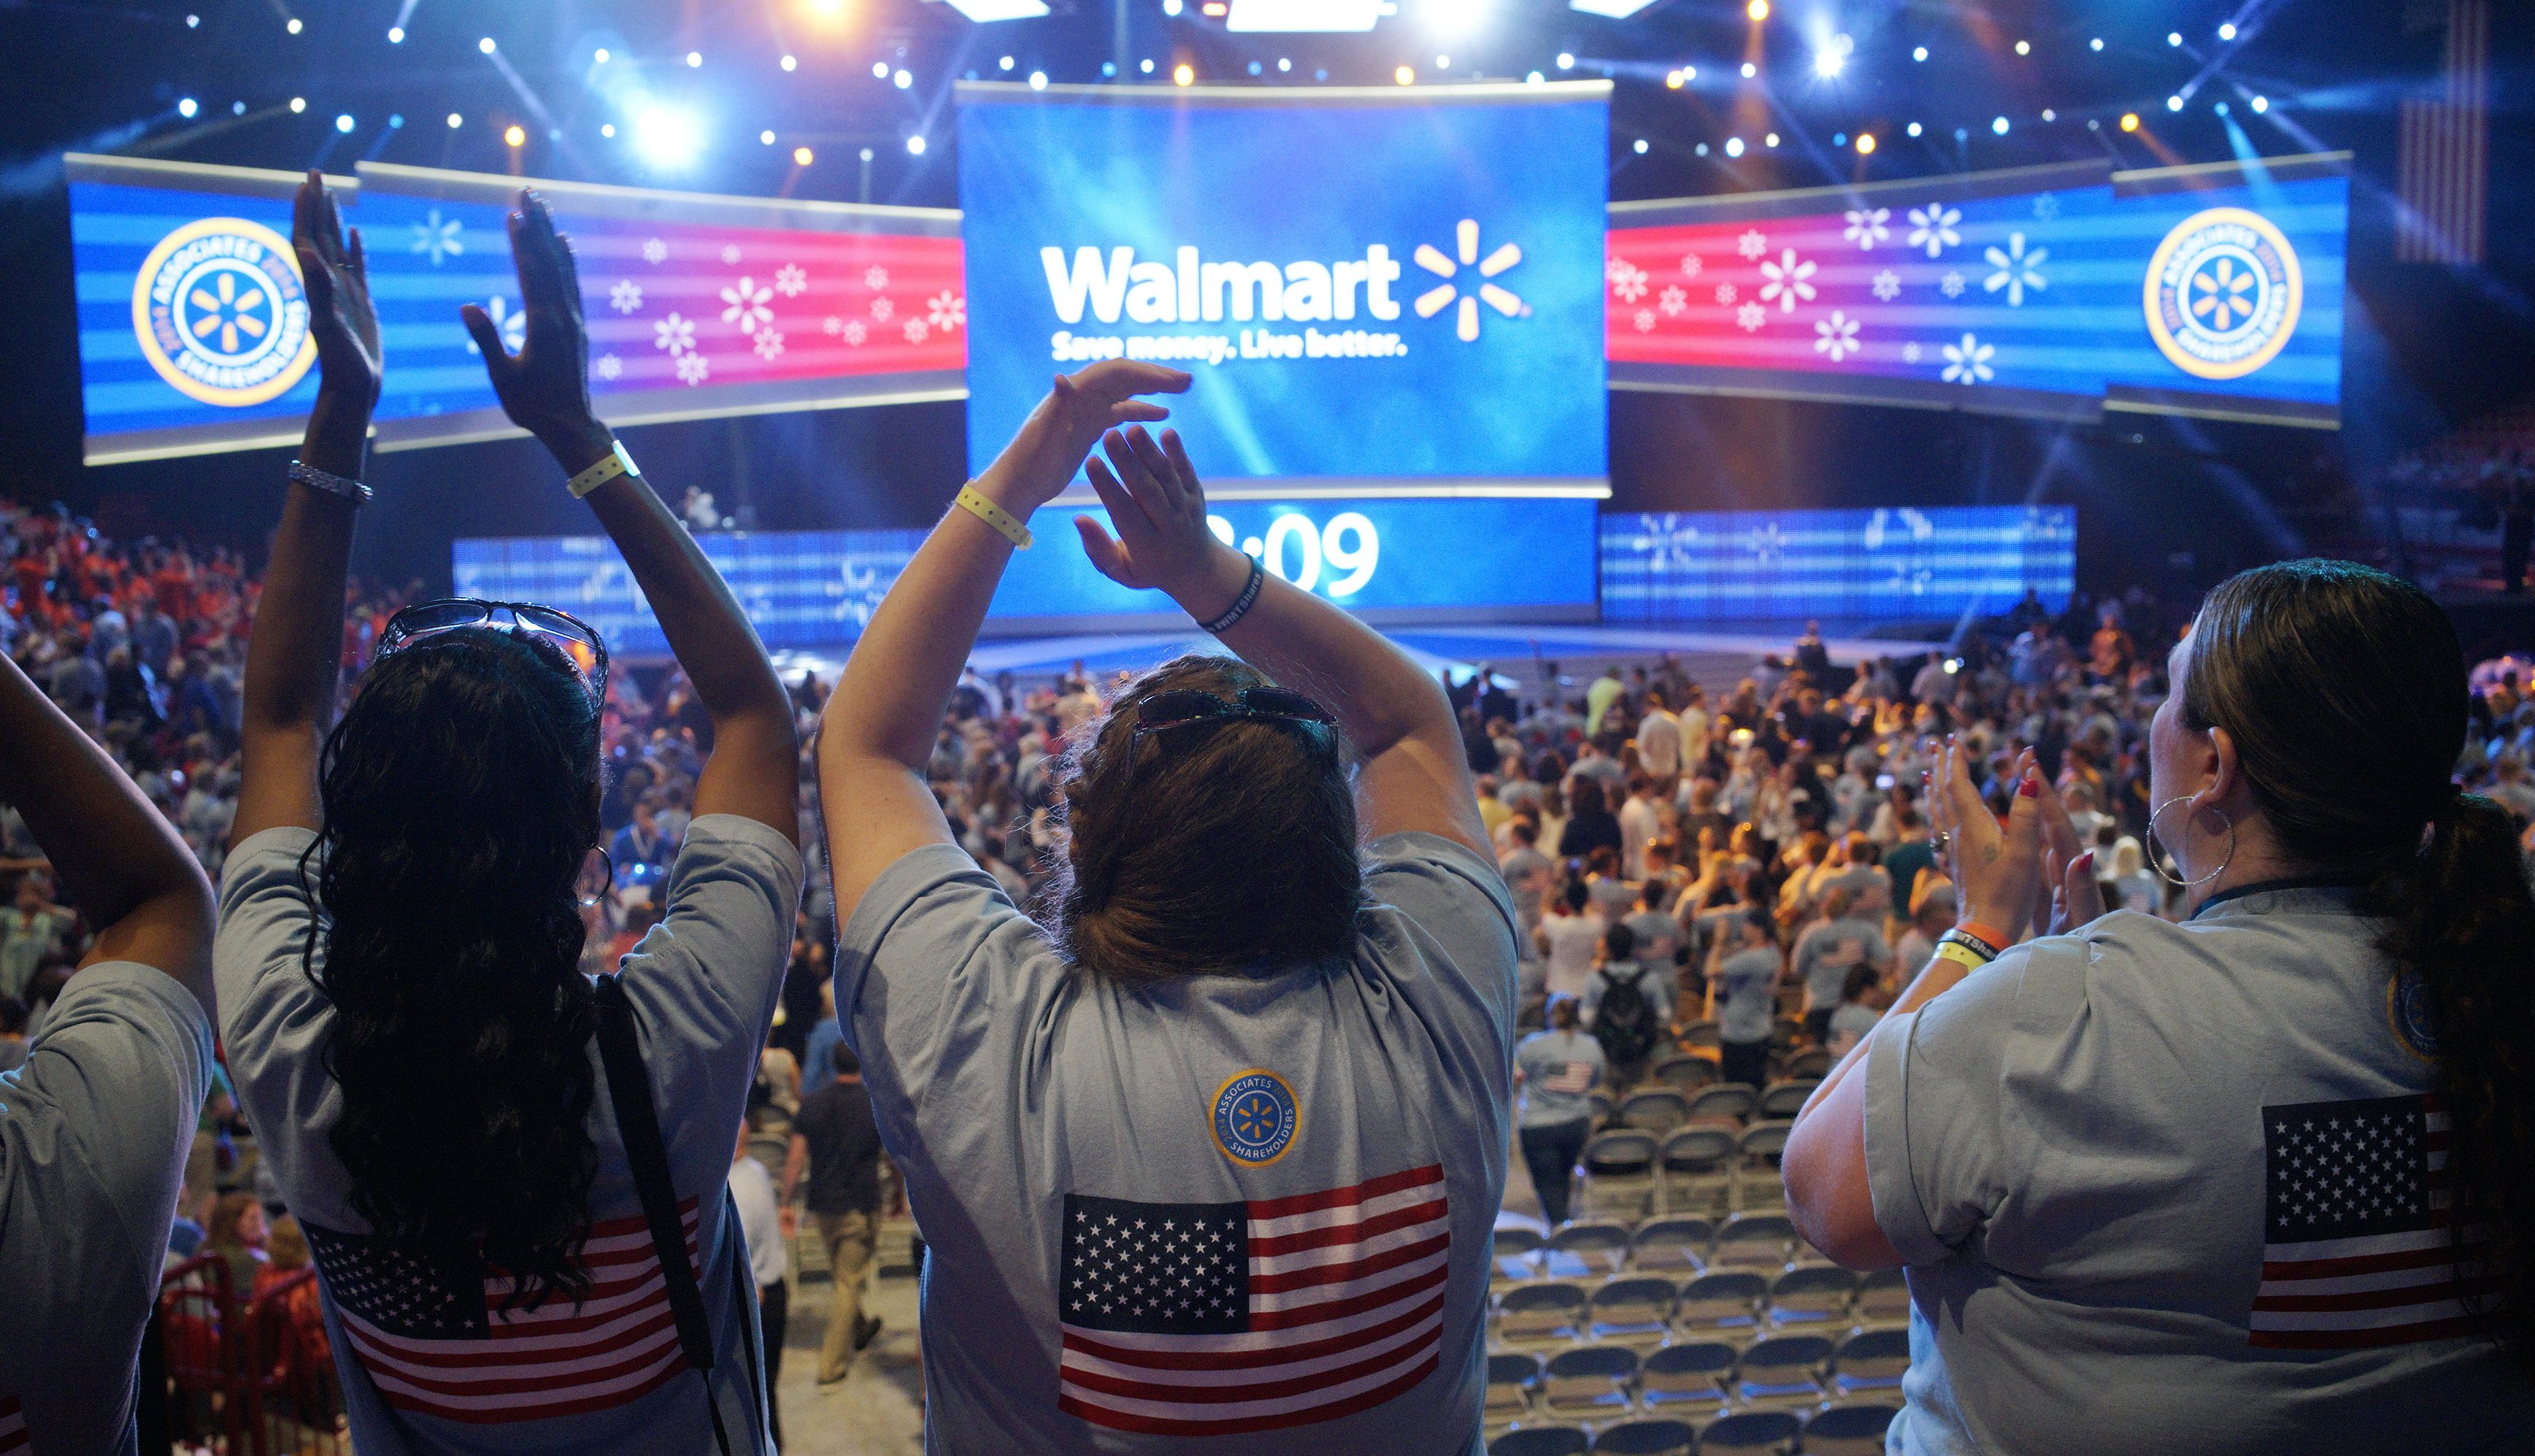 walmart is the largest private employer in 19 states